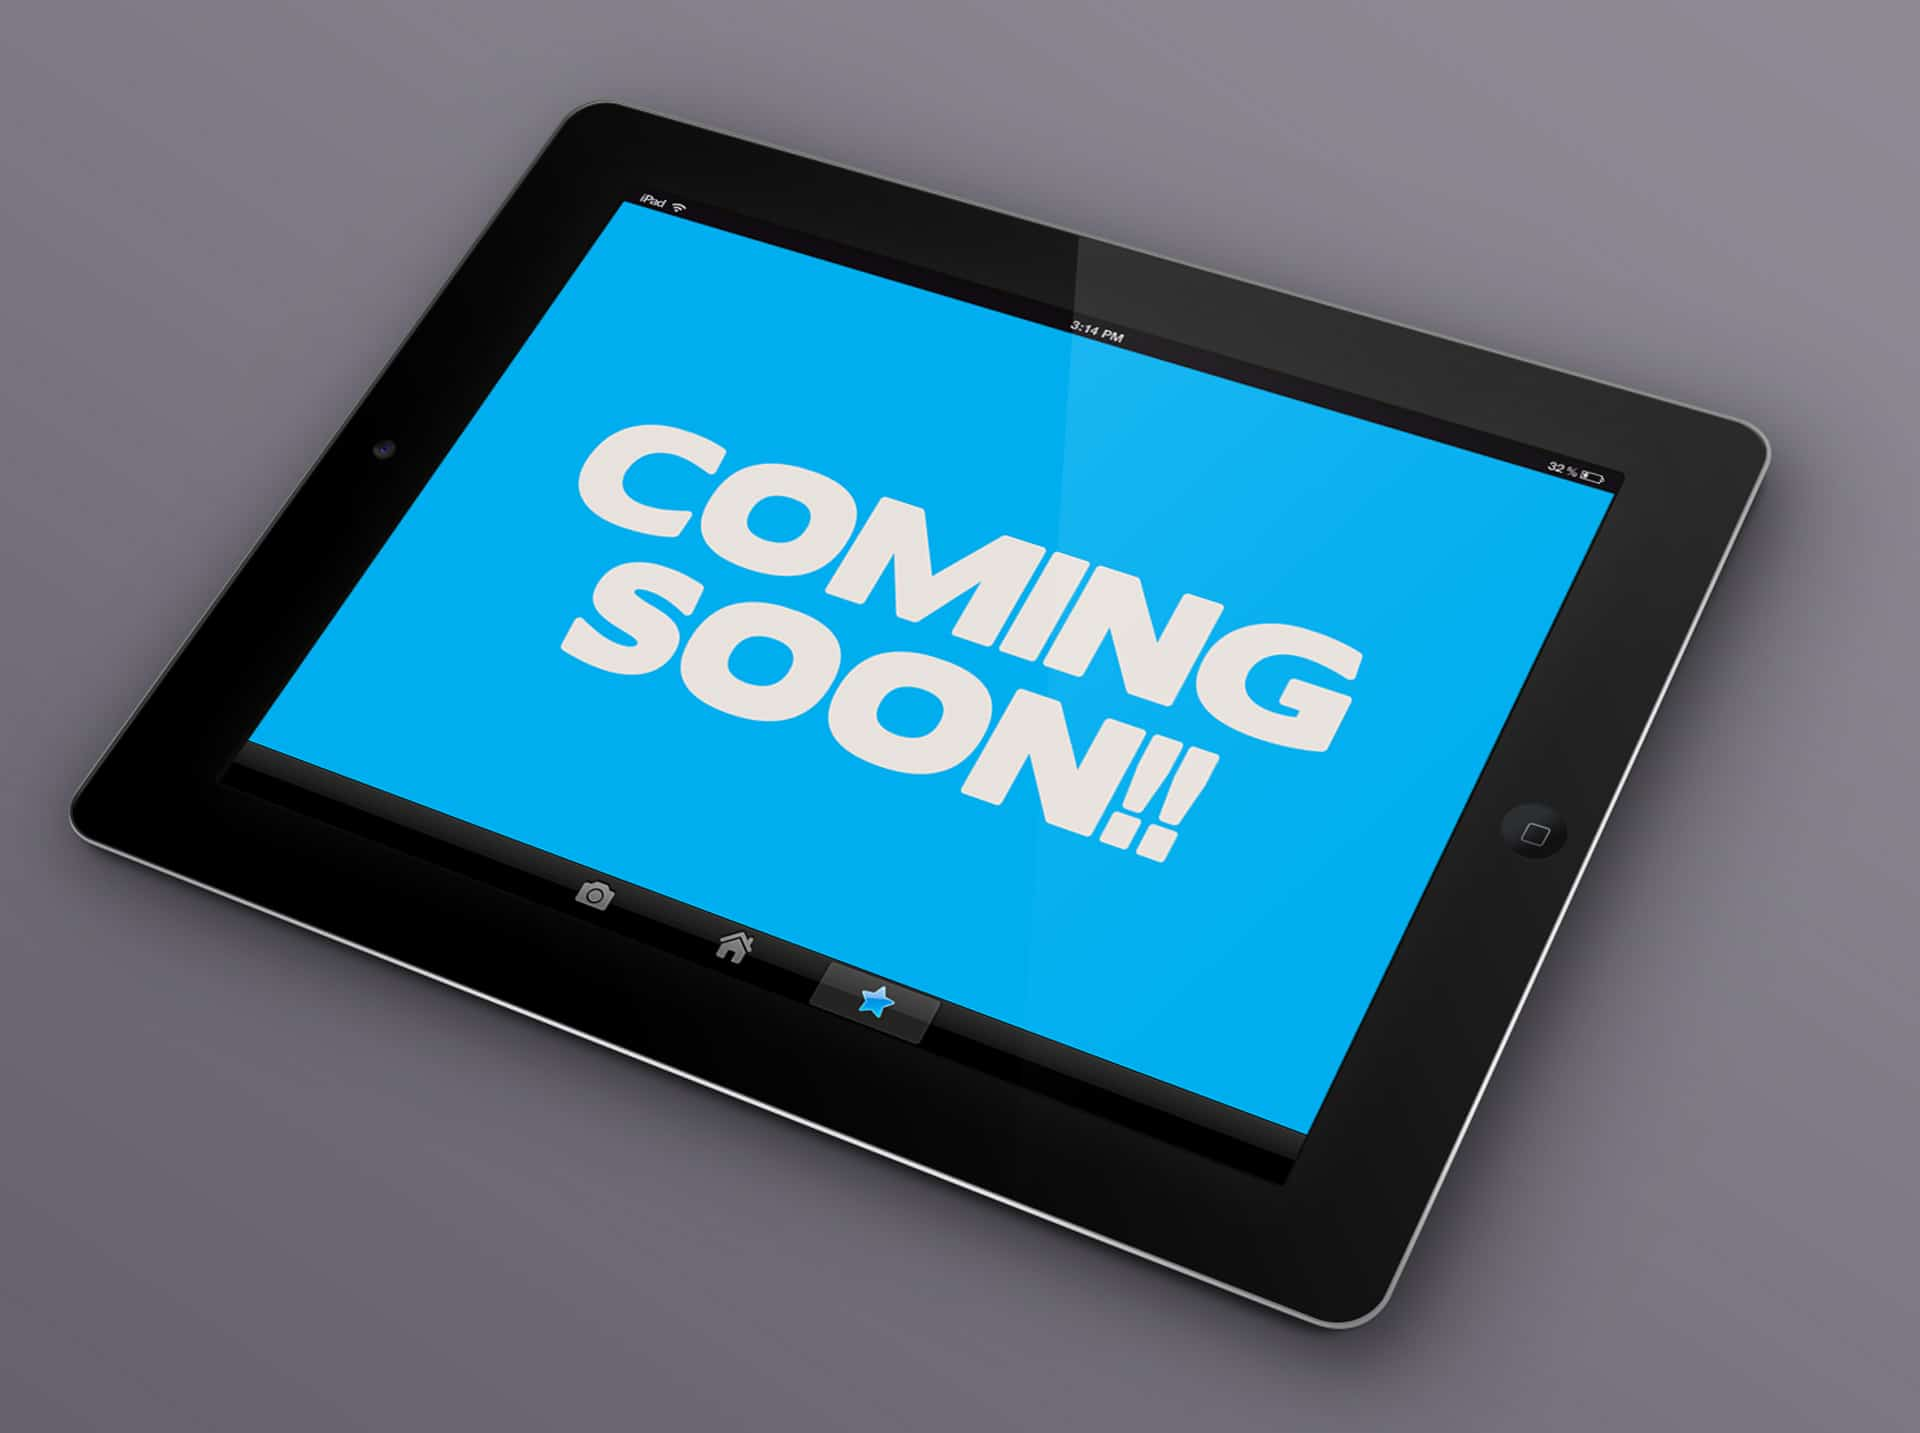 iPad App Coming Soon